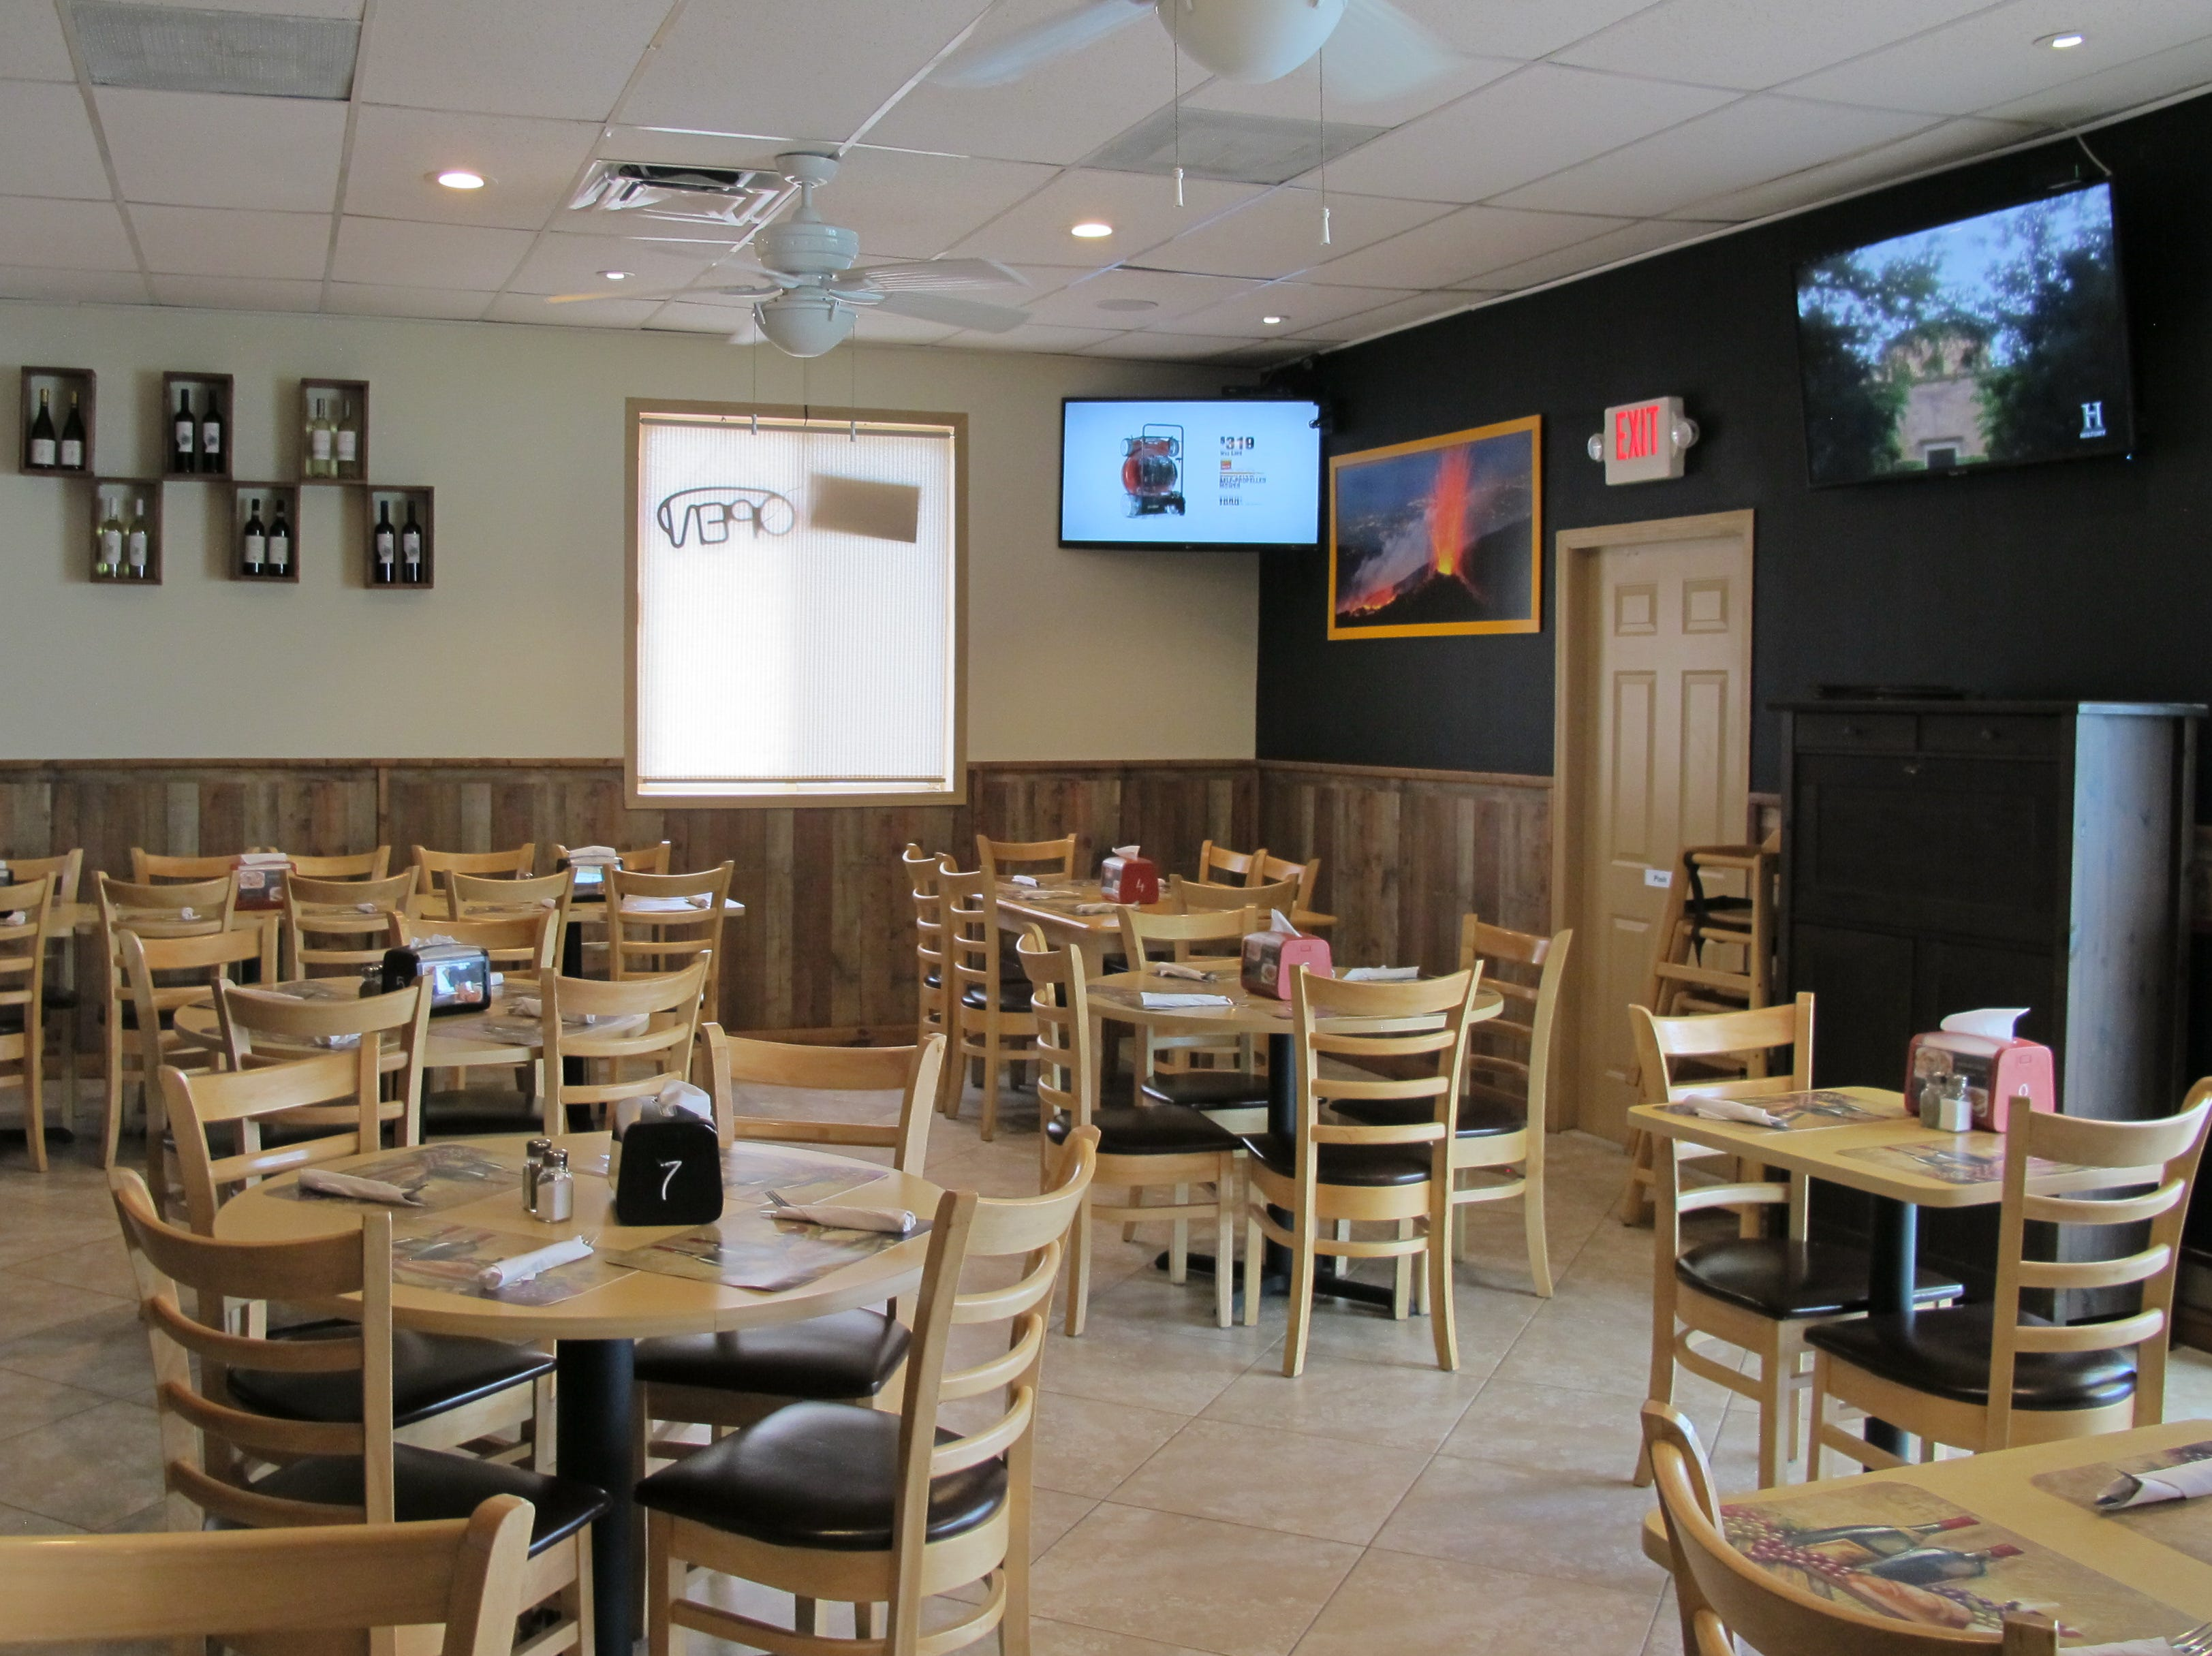 The dining room of the new Sicilia restaurant on Bayshore Drive in East Naples.